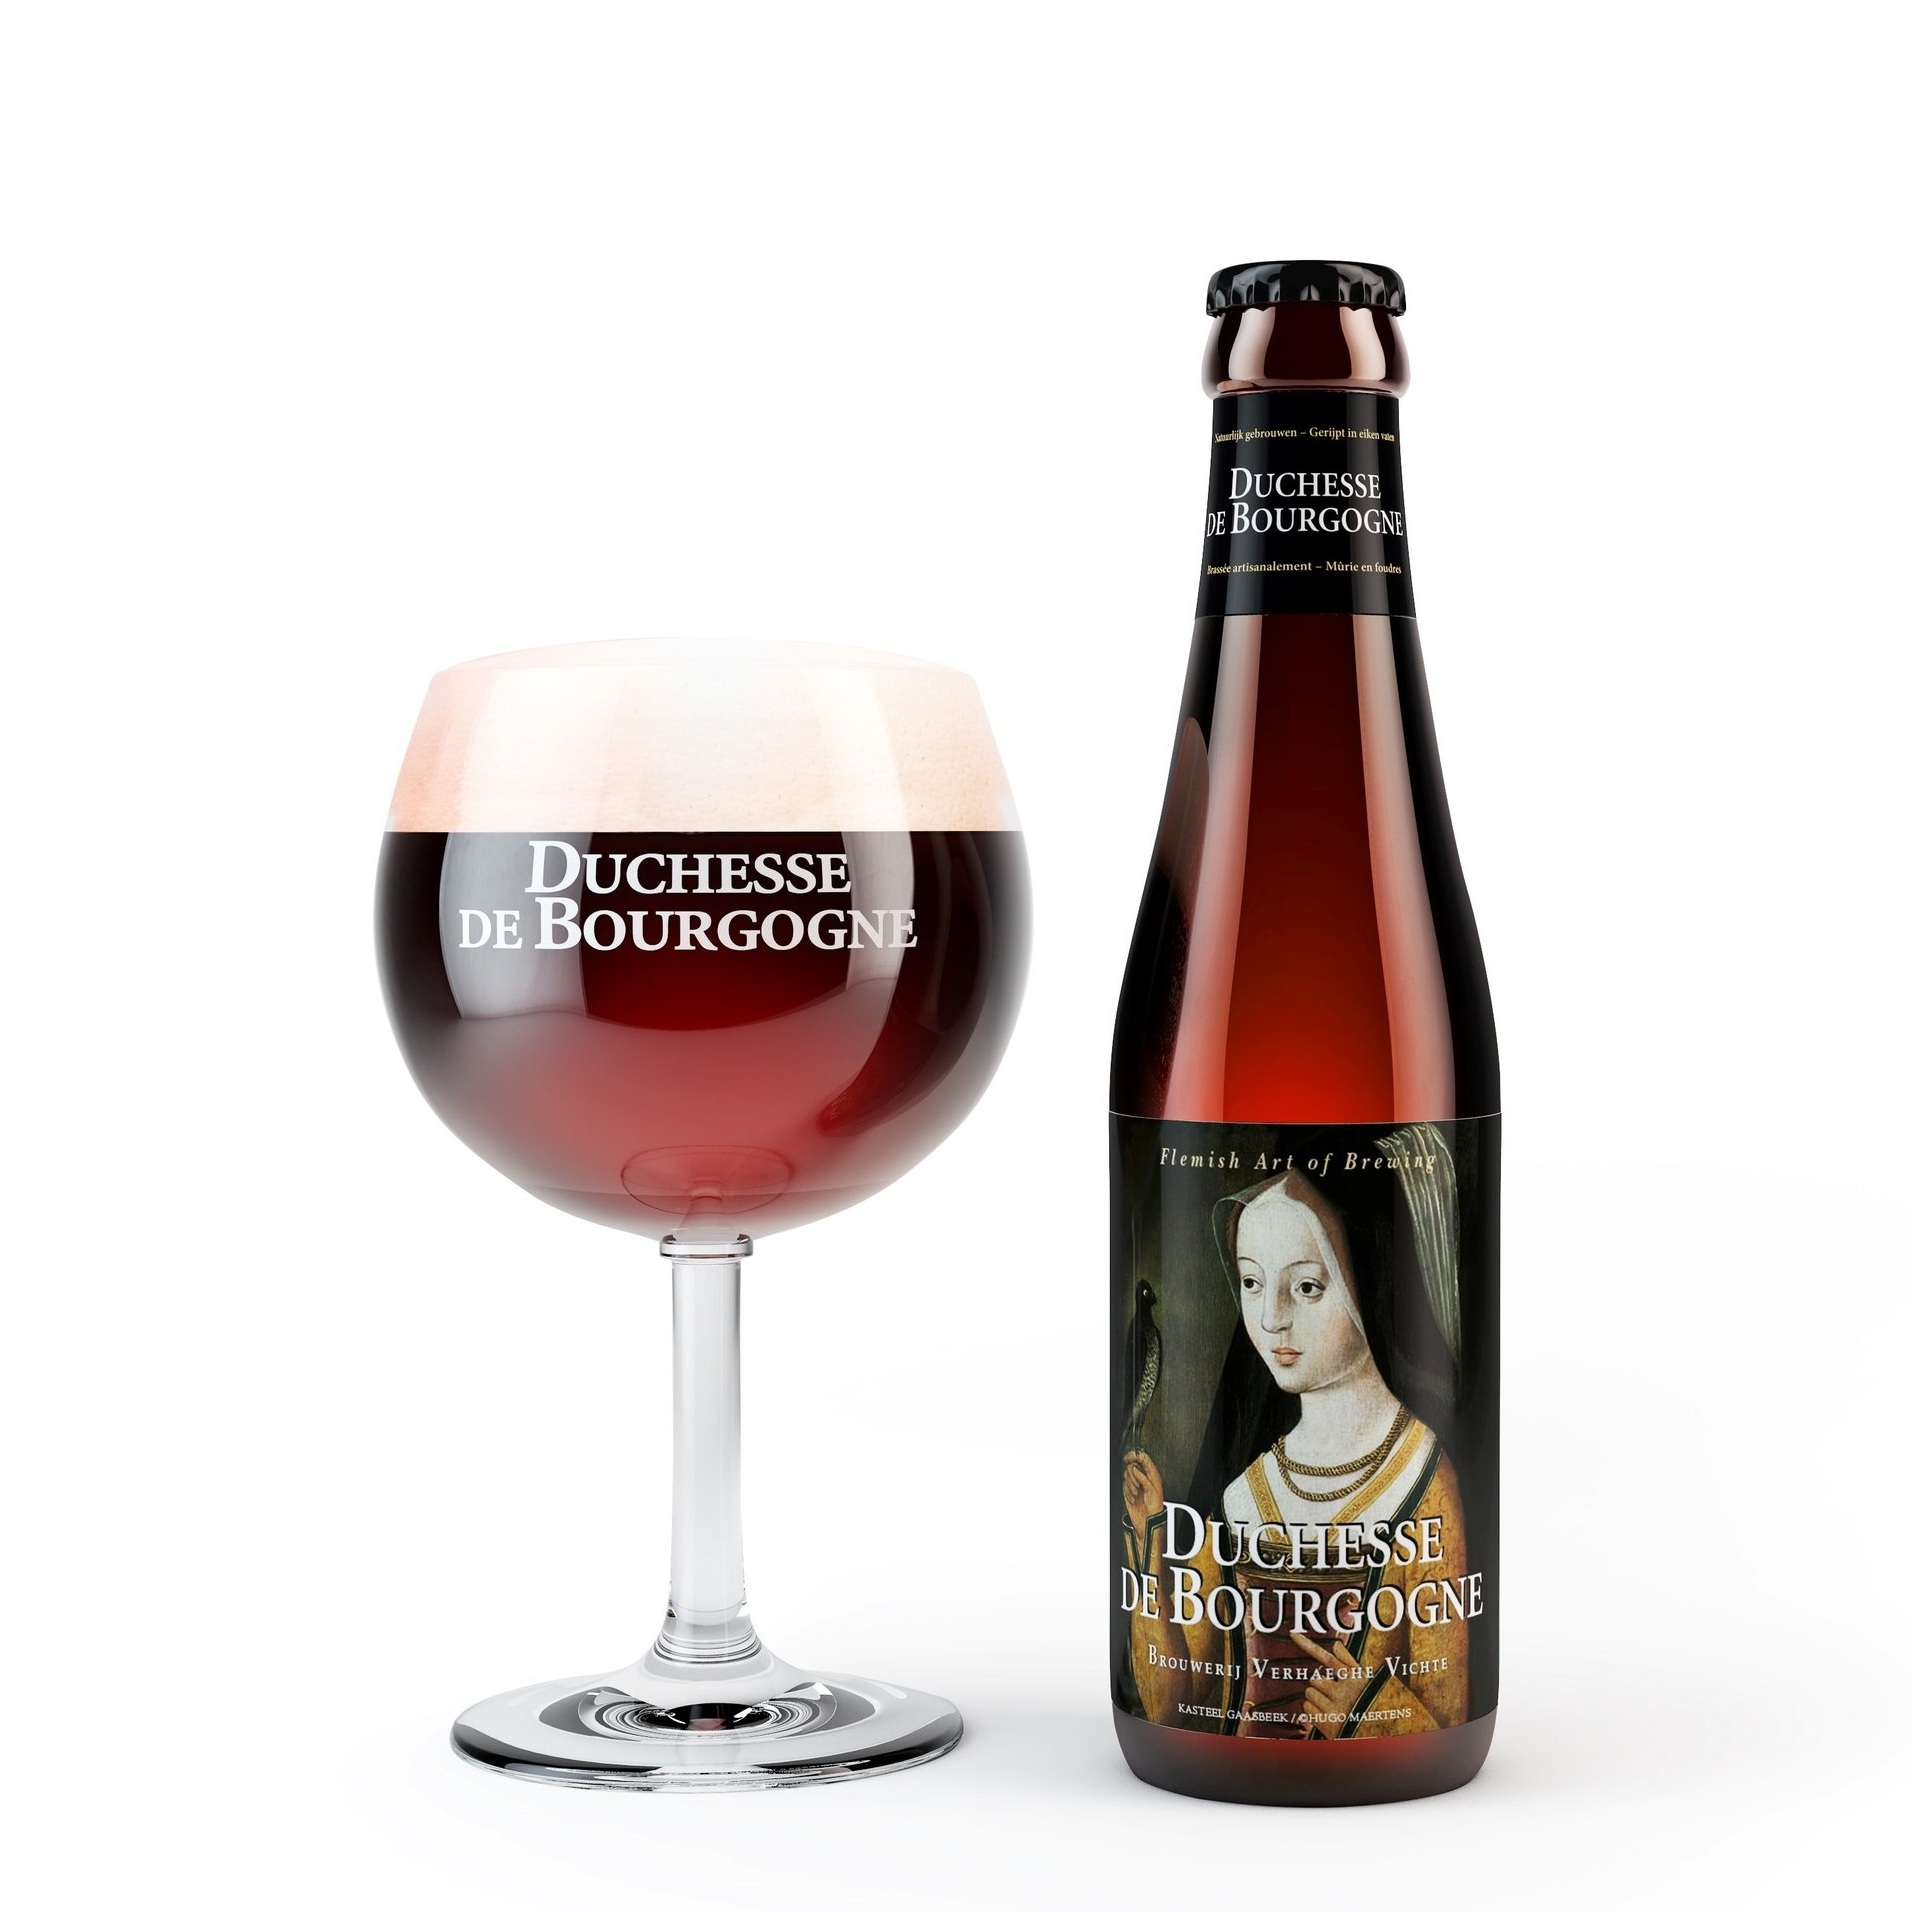 duchesse-resized.jpg